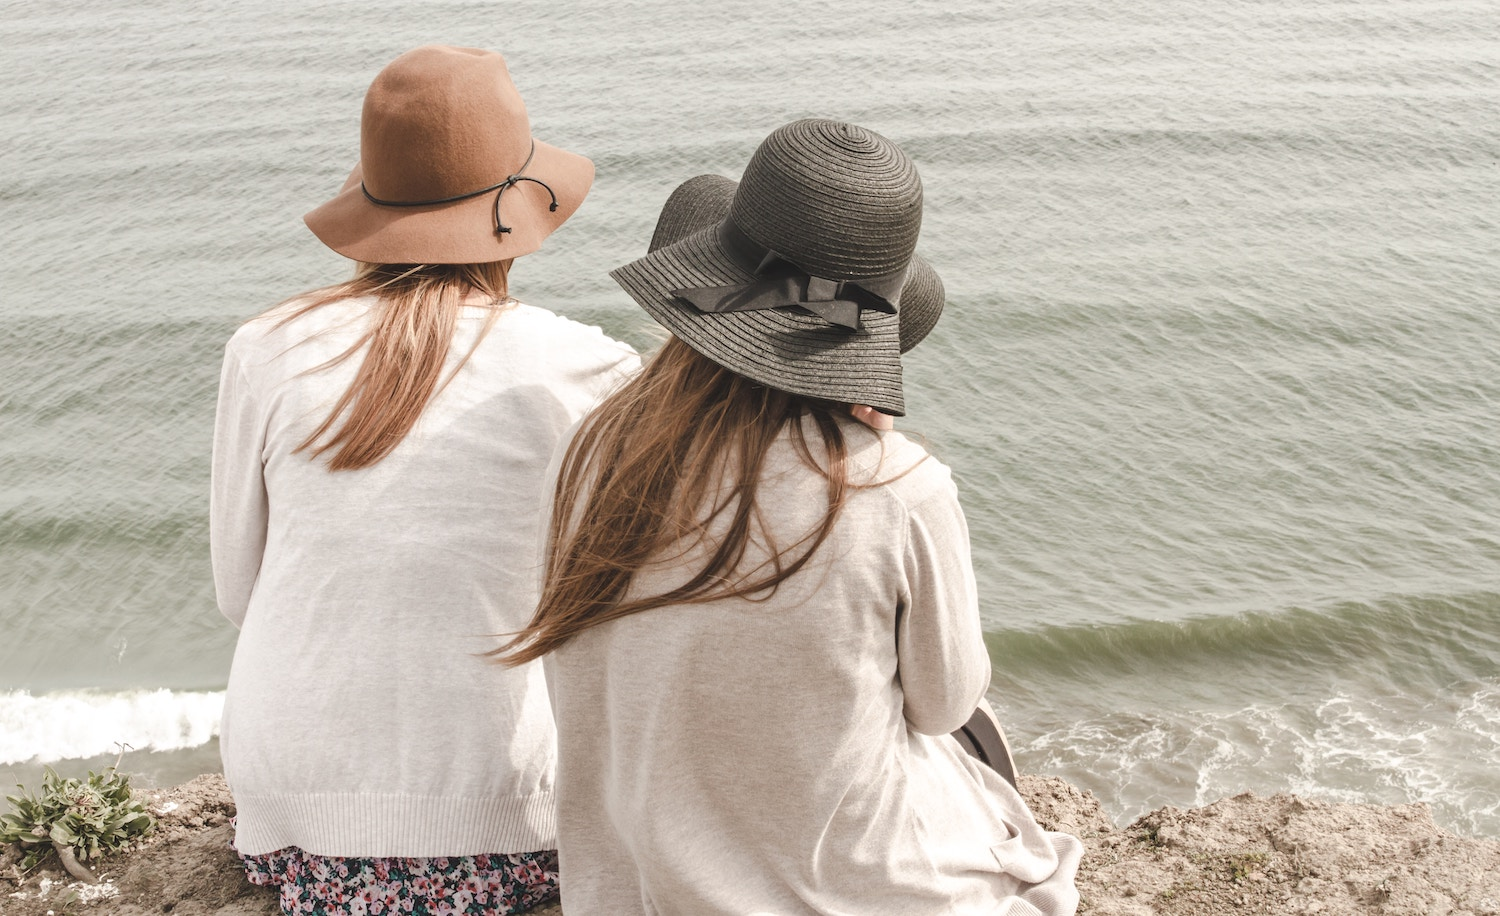 5 Things to Know About Being Friends With an INFP